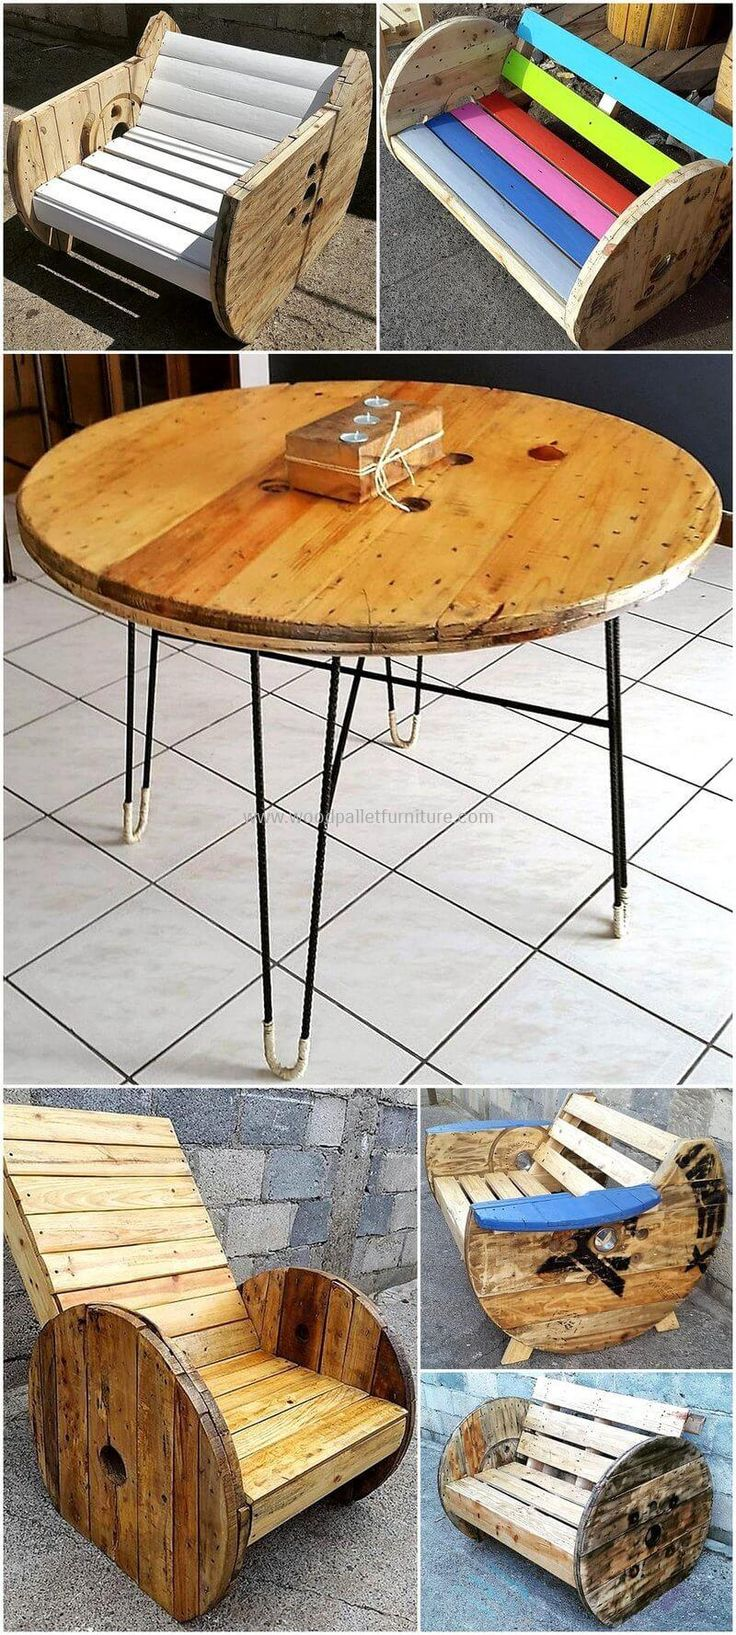 Insanely Smart Reclaimed Wood Pallet Projects. Cable ReelRecycled ...